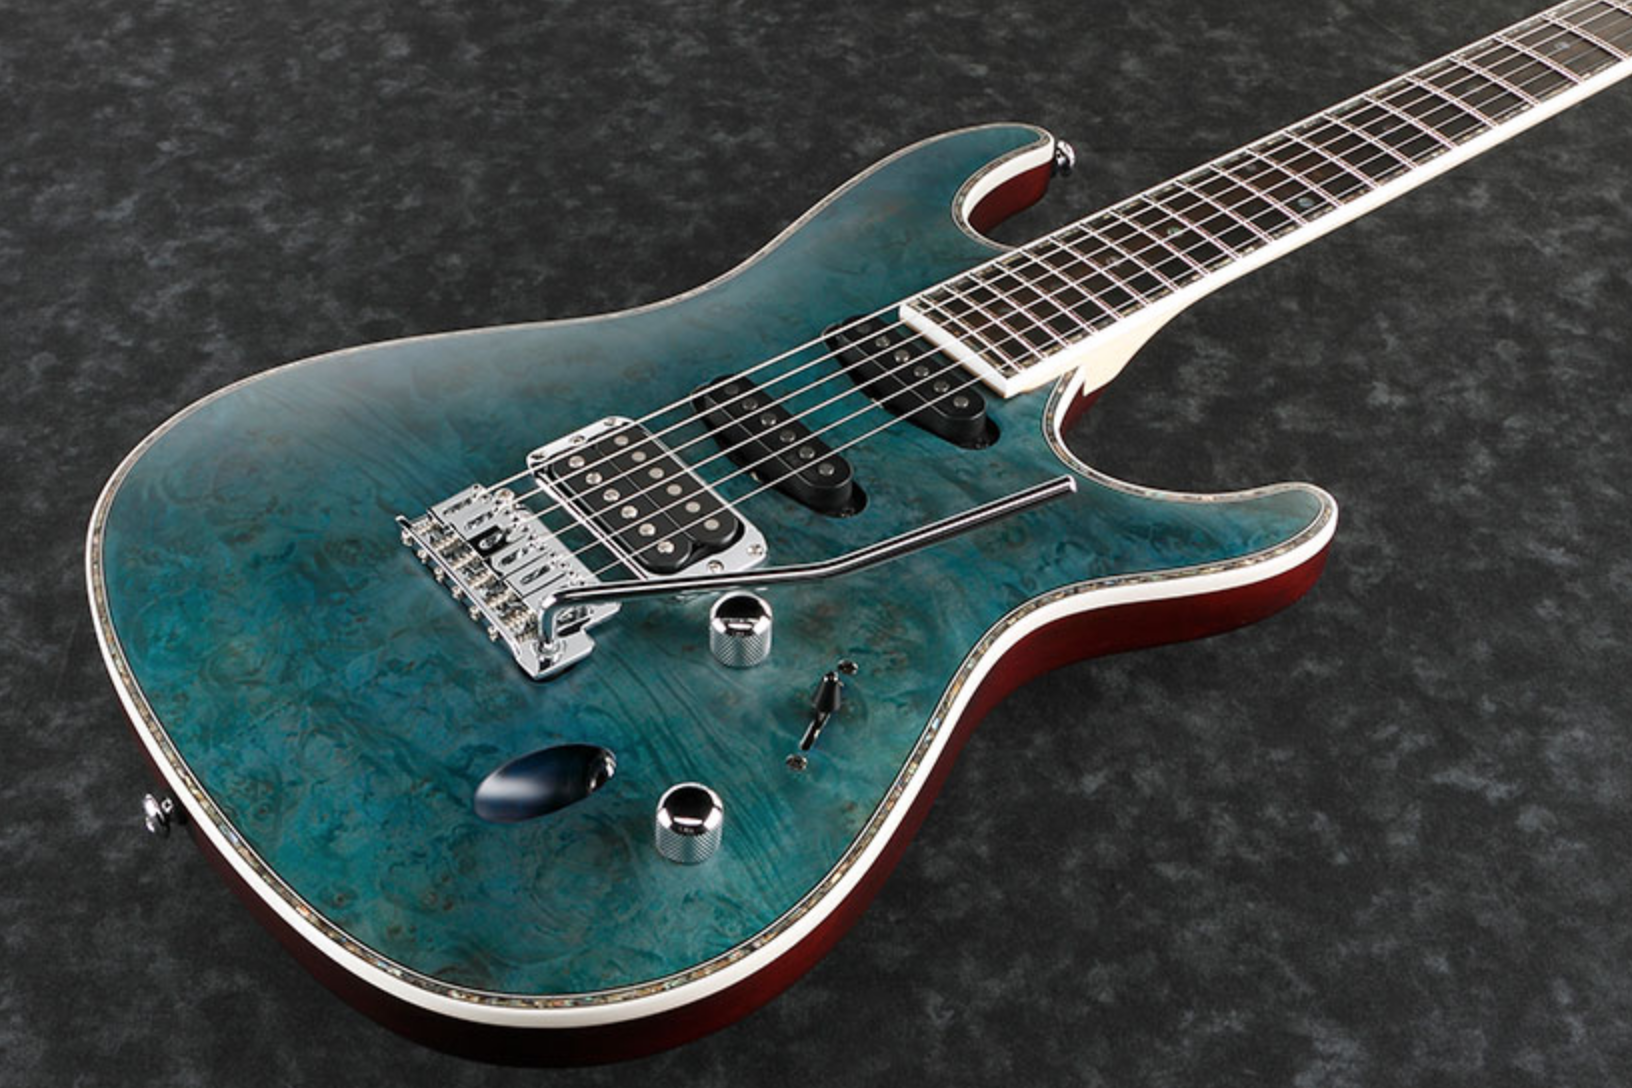 Amazing Ibanez Hss Guitar Frieze - Everything You Need to Know About ...